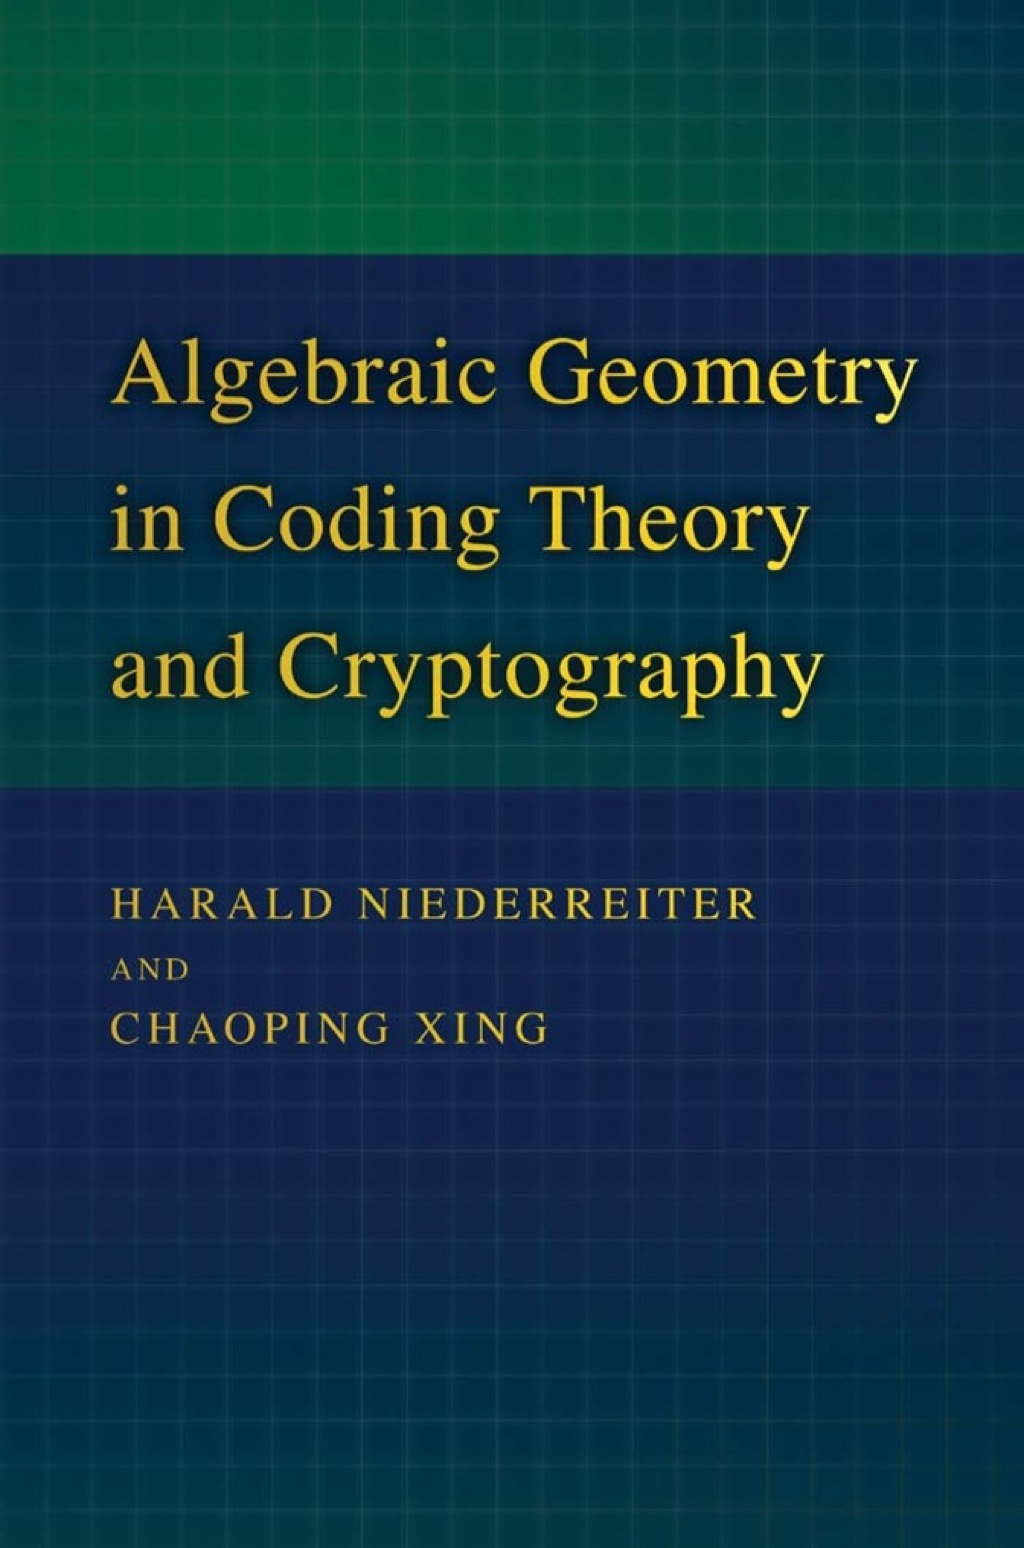 Algebraic Geometry In Coding Theory And Cryptography (ebook)